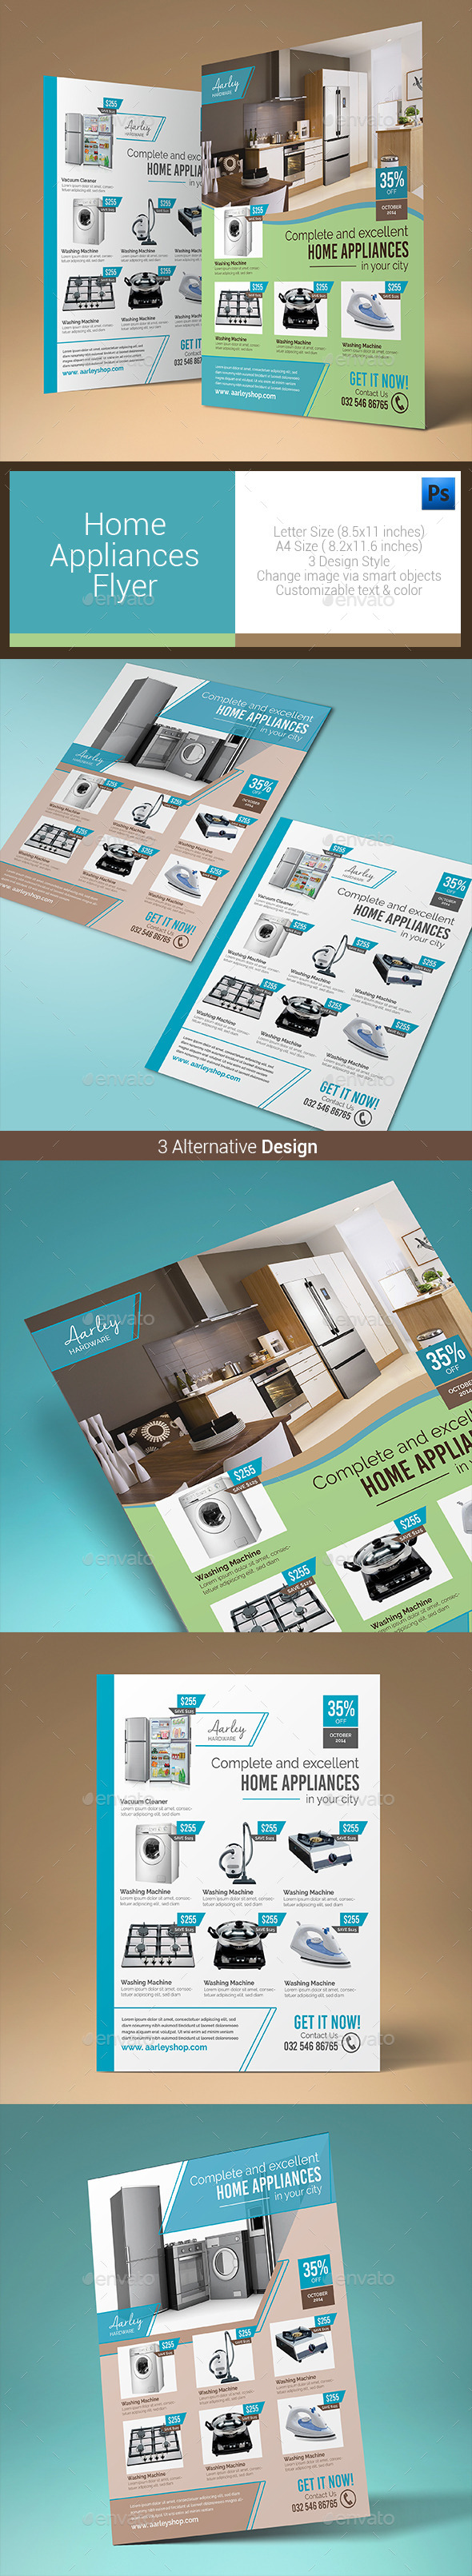 Home Appliances Flyer - Corporate Flyers